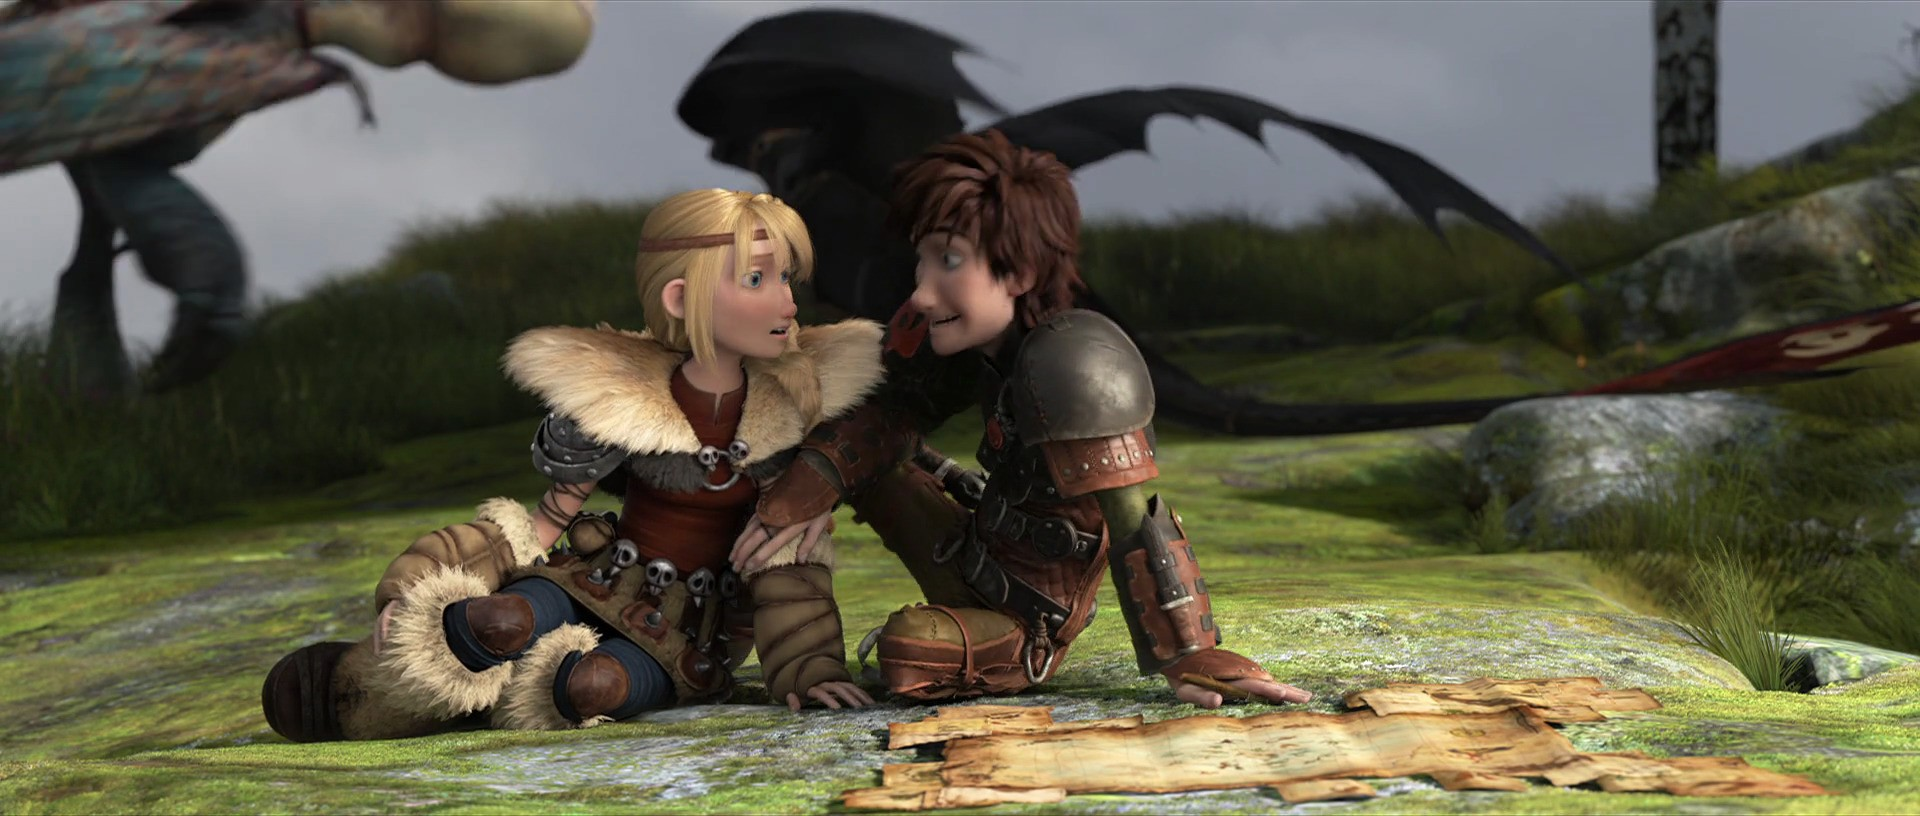 How to train a dragon girl astrid  hentia pic